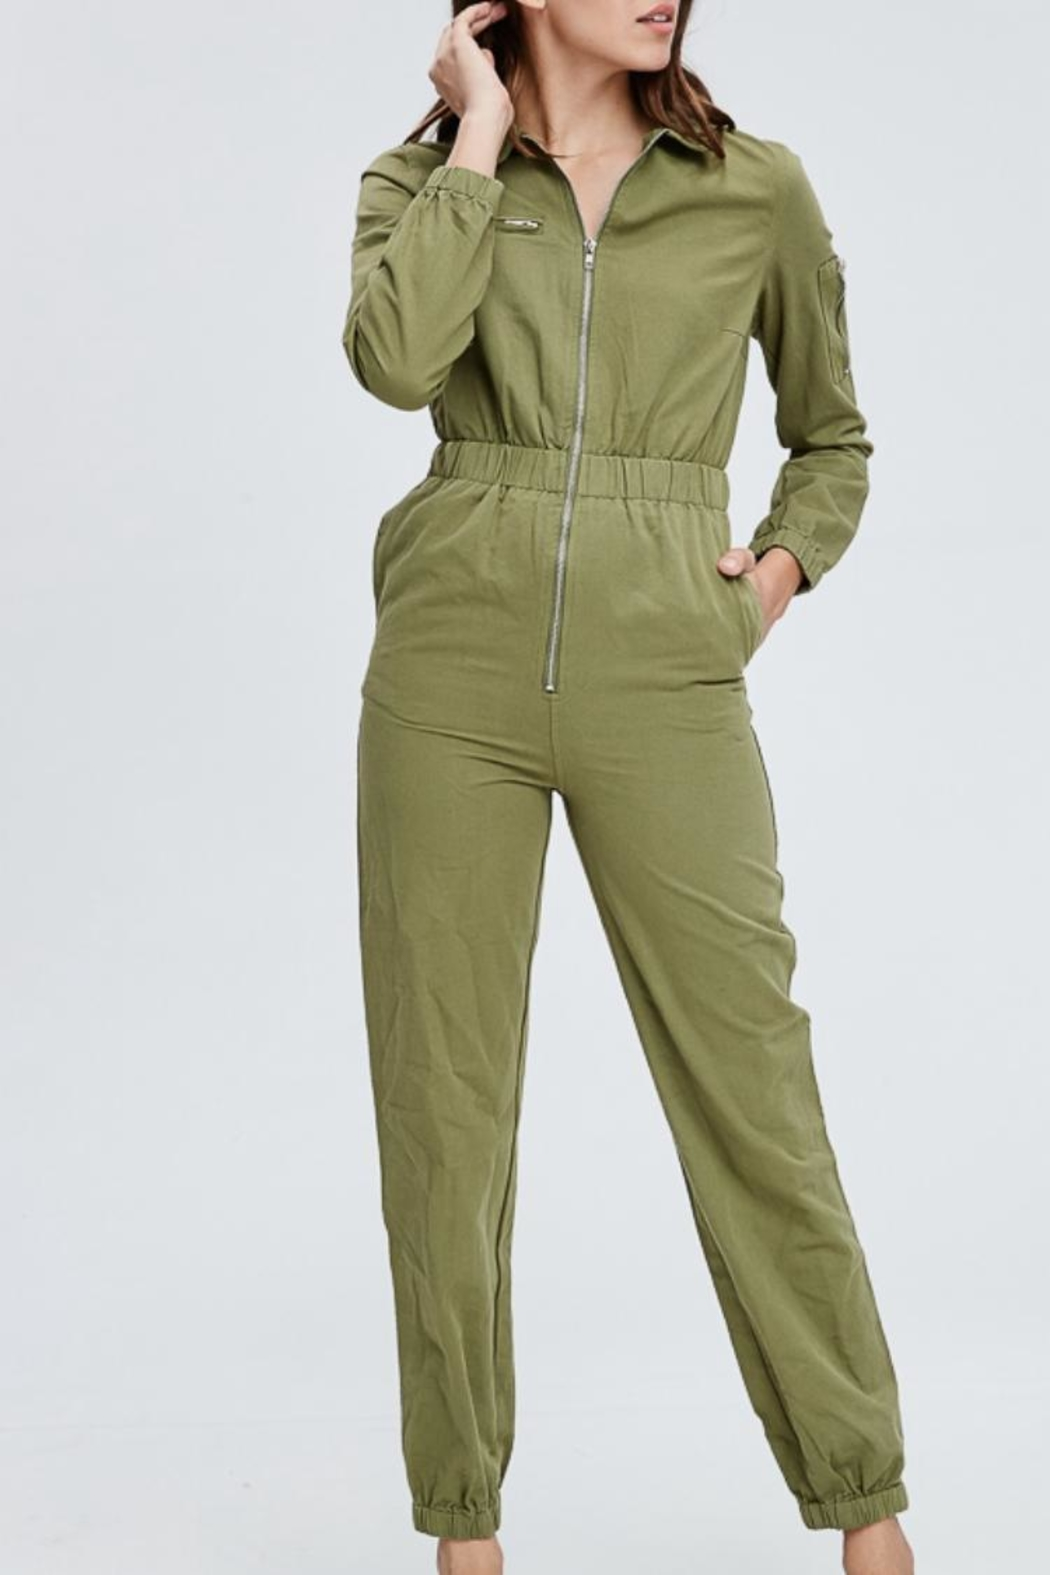 Emory Park Olive Overall Jumpsuit - Main Image